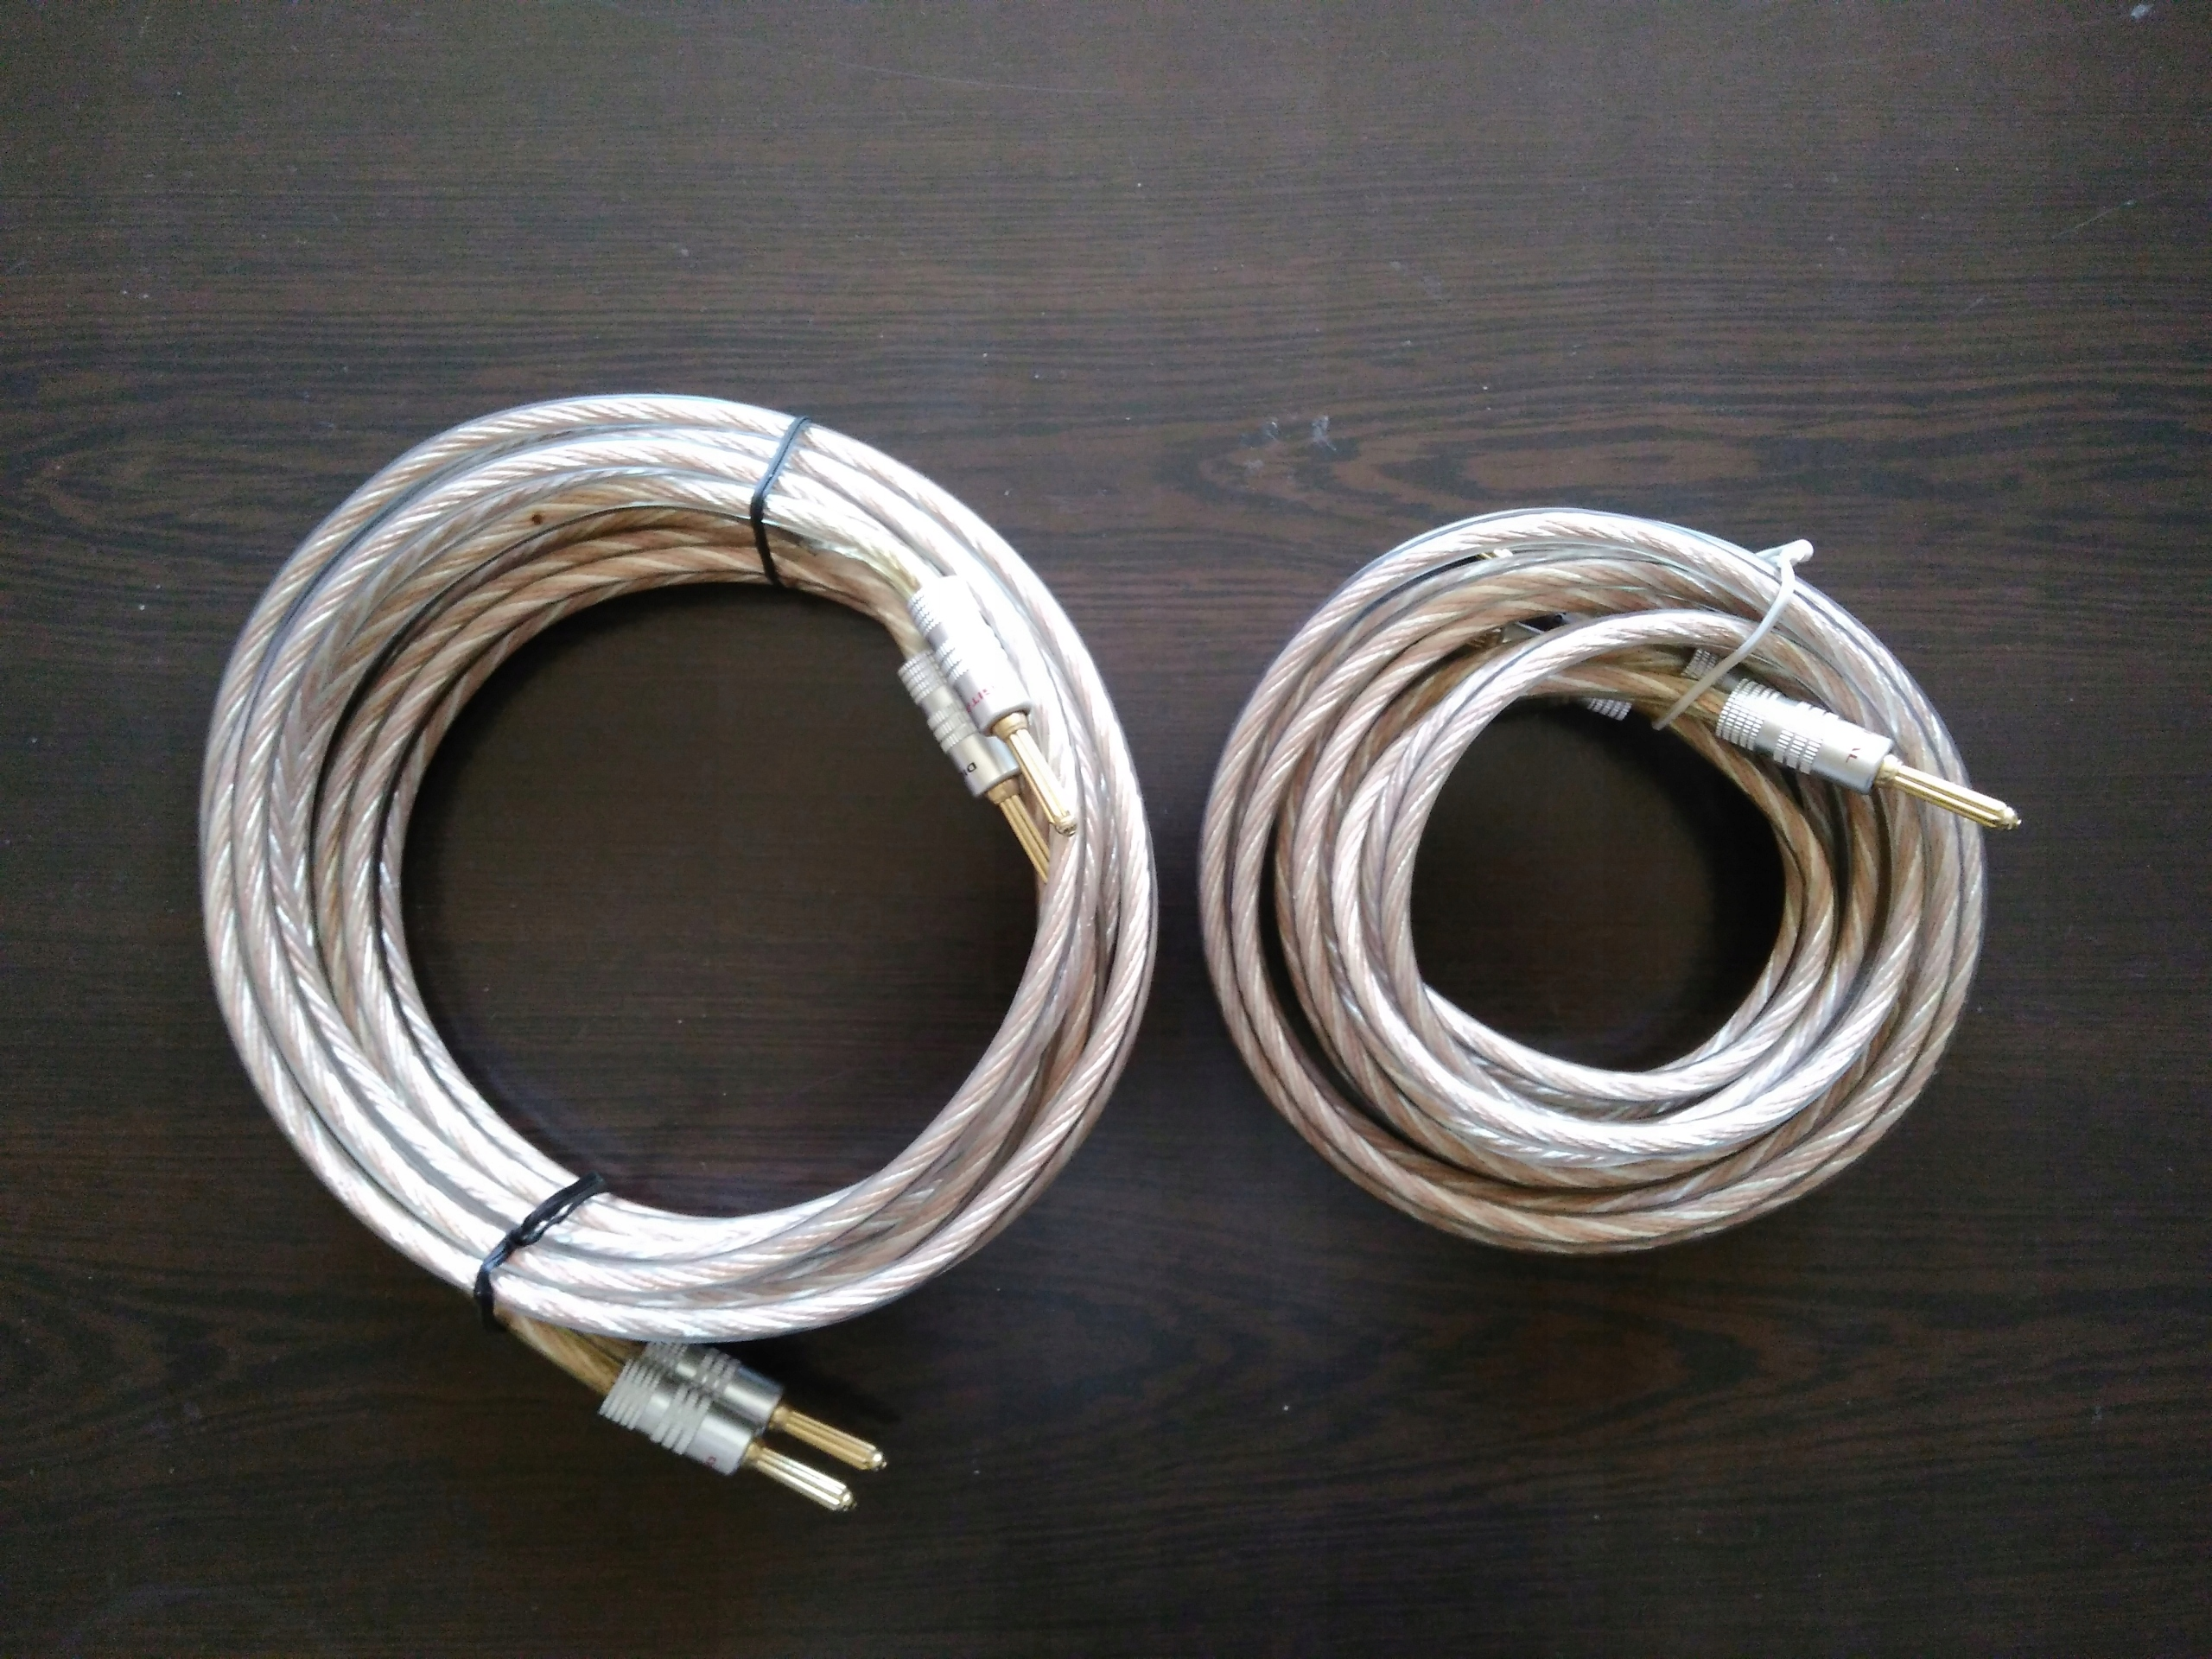 Real Cable BM 400T 4.00mm - 3m / 2m